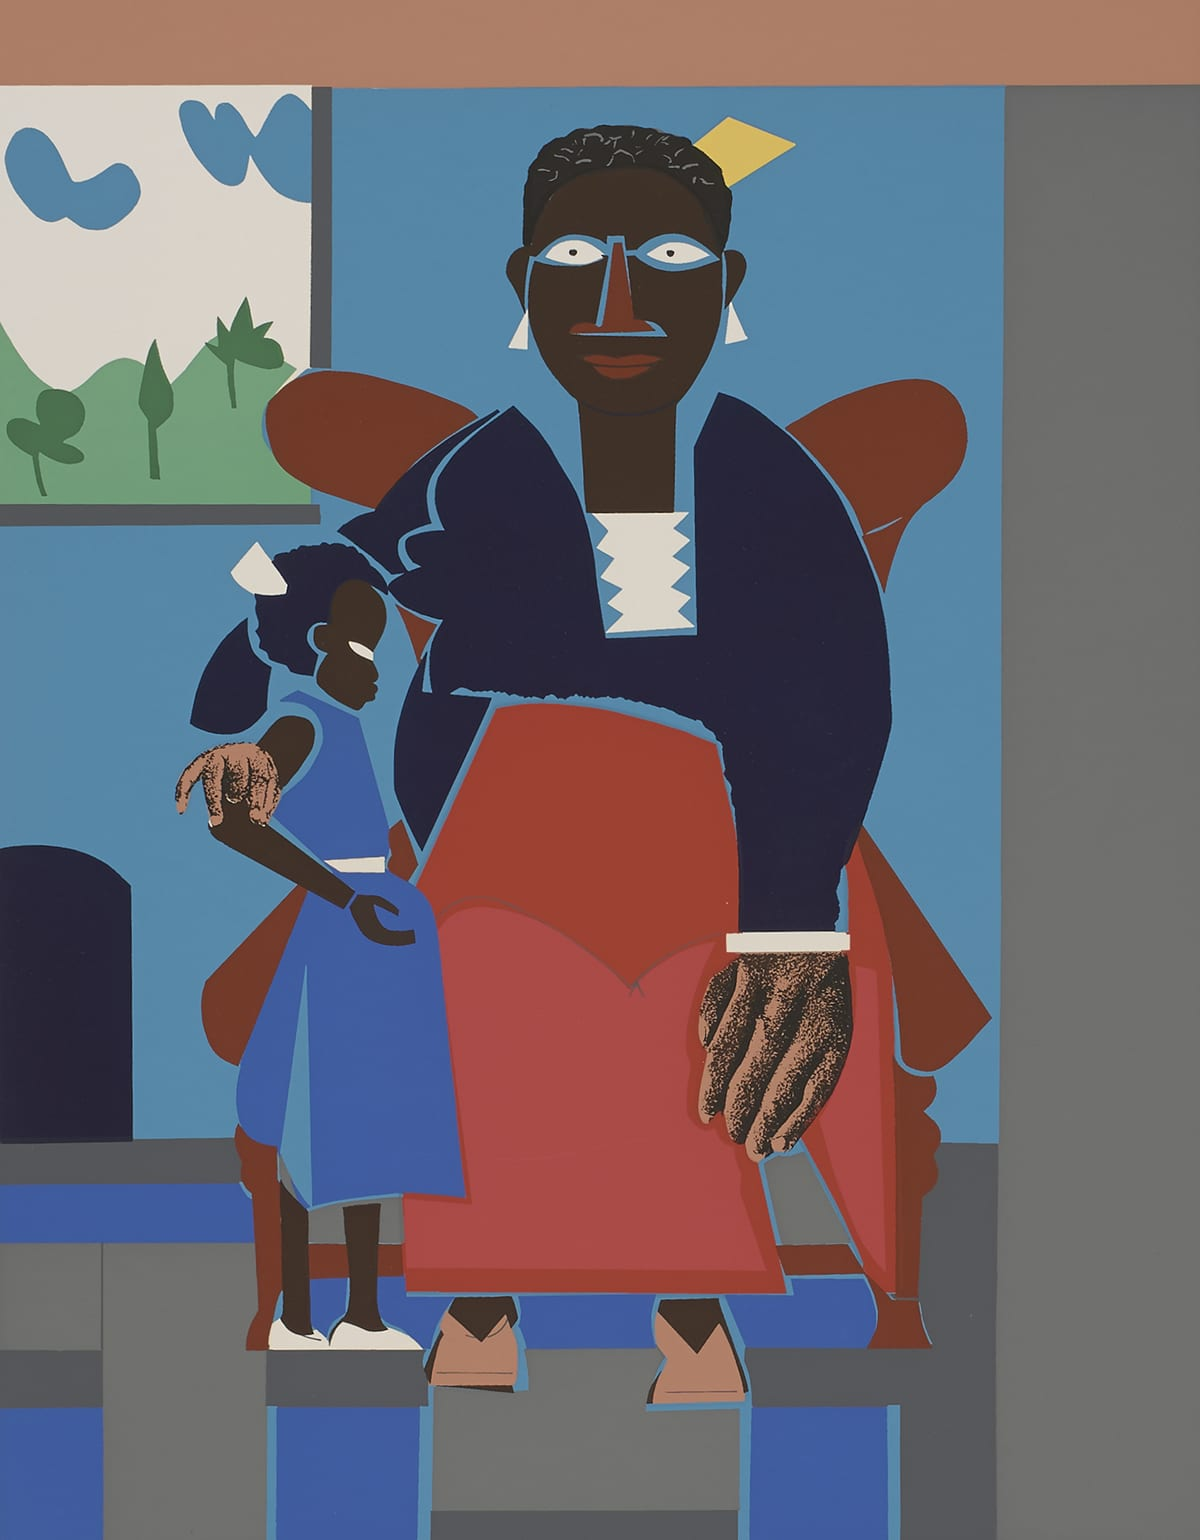 [Image Description: Family (Mother and Child). Romare Bearden.. 1980. Color screenprint on cream wove paper. 18in H x 14 in W. A Black mother sits on a brown chair with her right arm around her child who is wearing a blue dress and white shoes. The mother has short curly black hair with brown highlights and a yellow square coming out the back, white triangular earrings, a reddish brown nose and lips, a dark blue long sleeve dress with light blue outlines with a white shirt underneath, a reddish orange apron, and light brown shoes. Her eyes and nose are outlined with blue lines and her hands are large and appear more dimensional than the other parts of her body. Her left hand rests on her knee and her right hand is held with thumb and third finger touching while resting on the child's elbow. The child has short dark curly hair with a white triangle coming out the back and white eyes. She stands with her left side resting on her mother's apron looking towards the right side of the print. Her arm bent at the elbow, palm open and facing up. A bright blue wall is behind the chair with a painting with green hills, trees, white sky, and blue clouds with a light gray frame. There is a dark blue shape under the painting that resembles an arched entryway. The chair is sitting on a floor consisting of light gray, dark gray, and blue rectangles - some vertical and some horizontal. The angles are such that it creates somewhat of an optical illusion.]